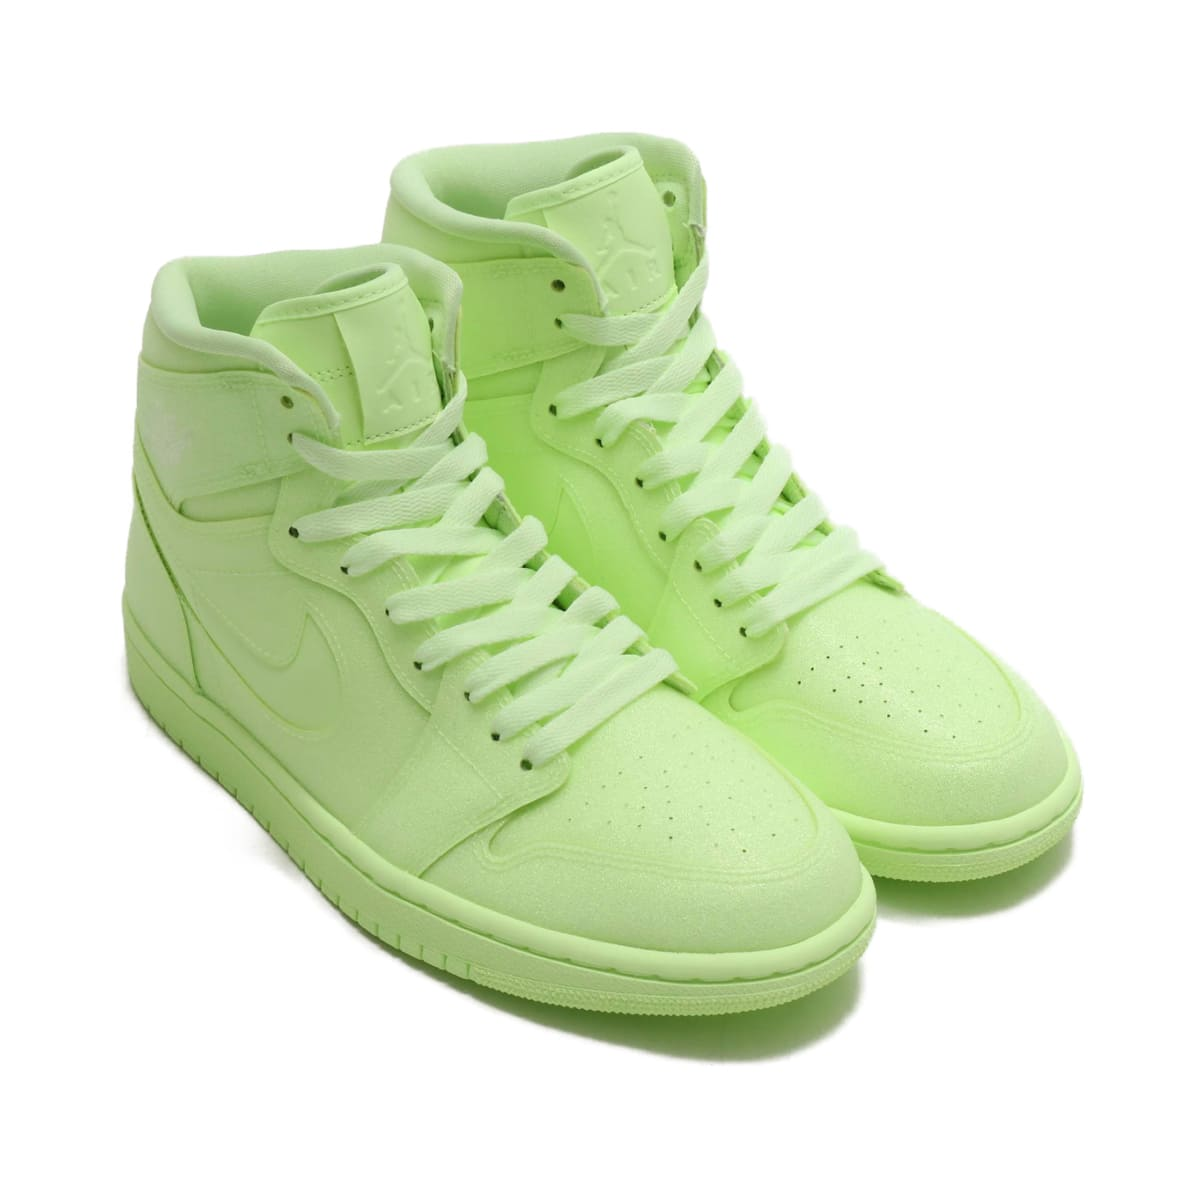 NIKE WMNS AIR JORDAN 1 RET HI PREM BARELY VOLT/BARELY VOLT 19FA-S_photo_large